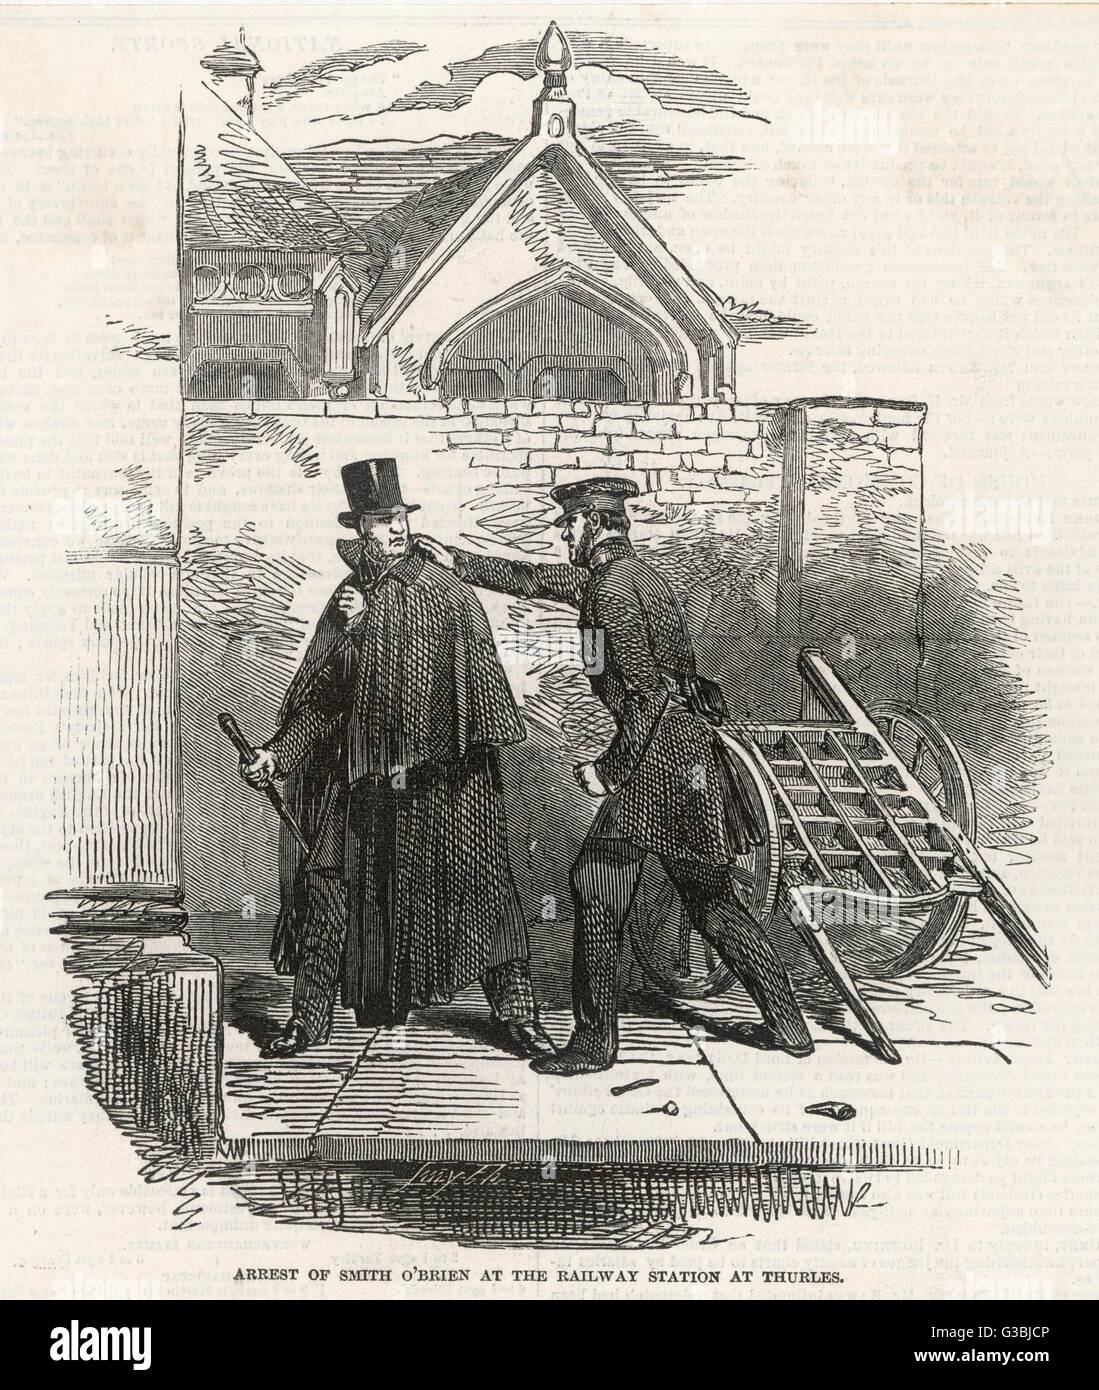 William Smith O'Brien, poorly  disguised in cape and hat, is  arrested at the railway  station at Thurles   - Stock Image